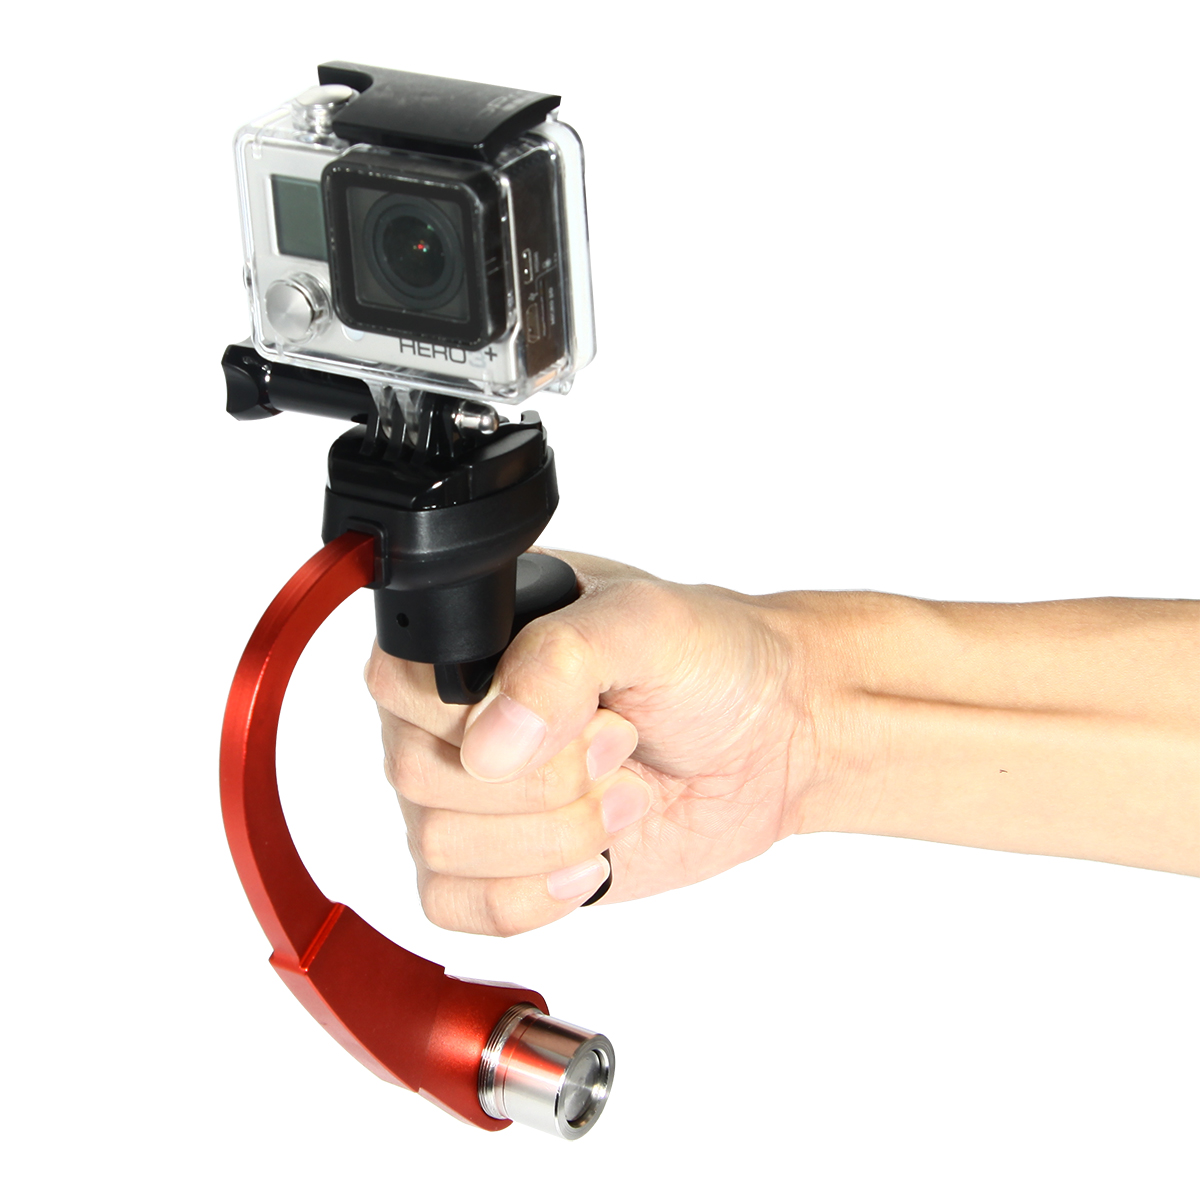 Mini Gimbal Handheld Steadicam Steadycam Curve Video Stabilizer For GoPro HD Hero 4/3+/3 Camera TV057 от Aliexpress INT